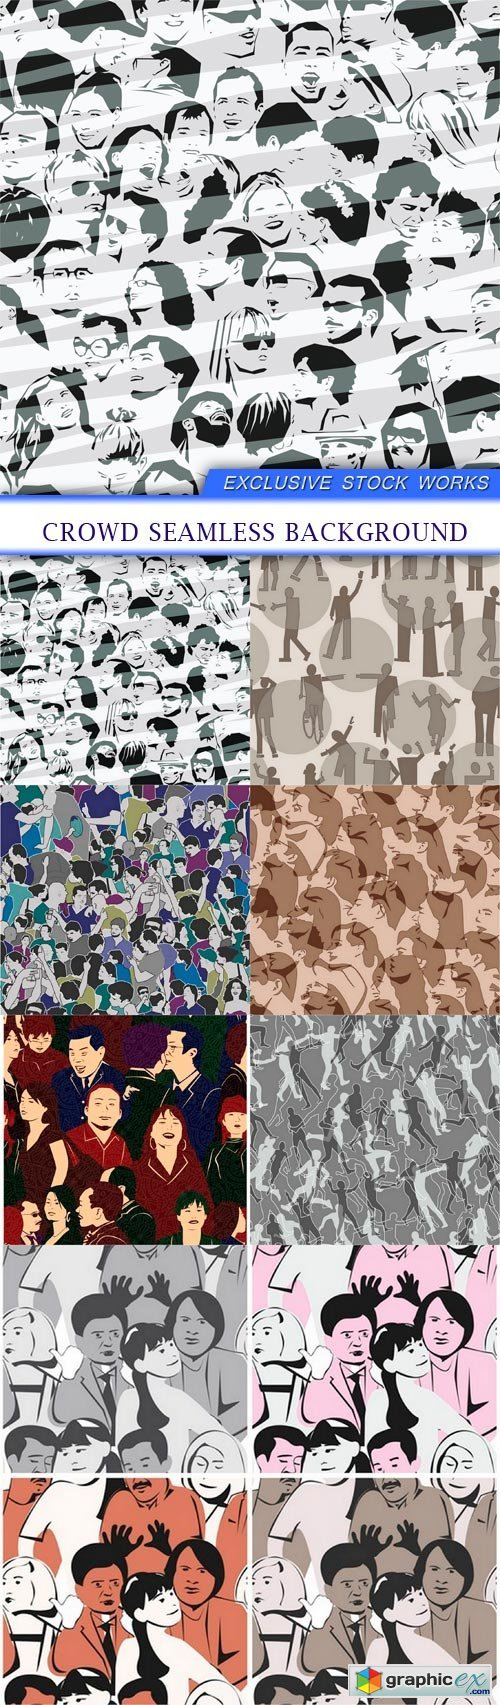 Crowd Seamless Background 7X EPS